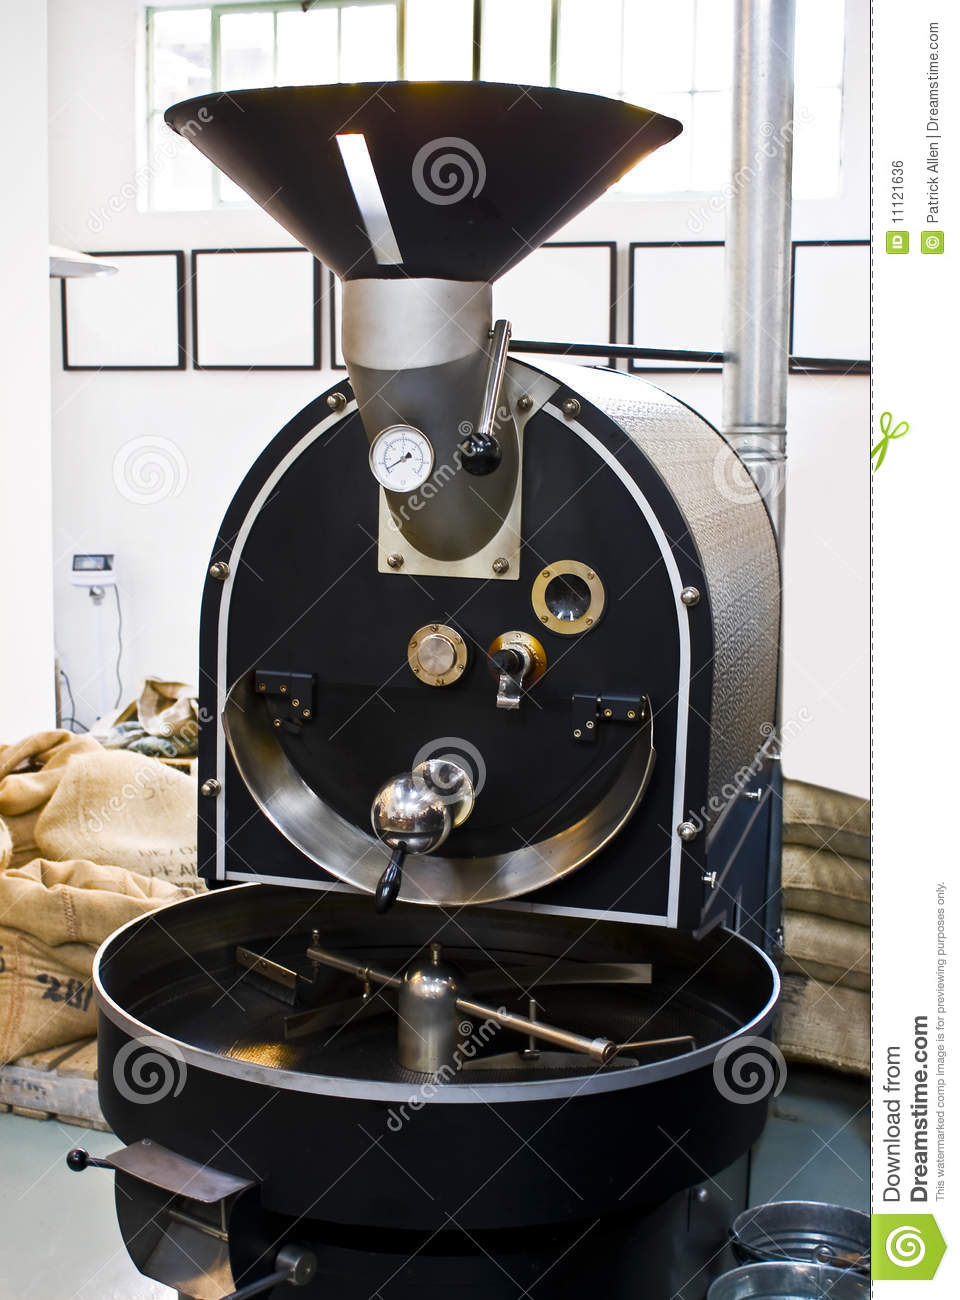 Commercial Coffee Drum Roaster Royalty Free Stock Image